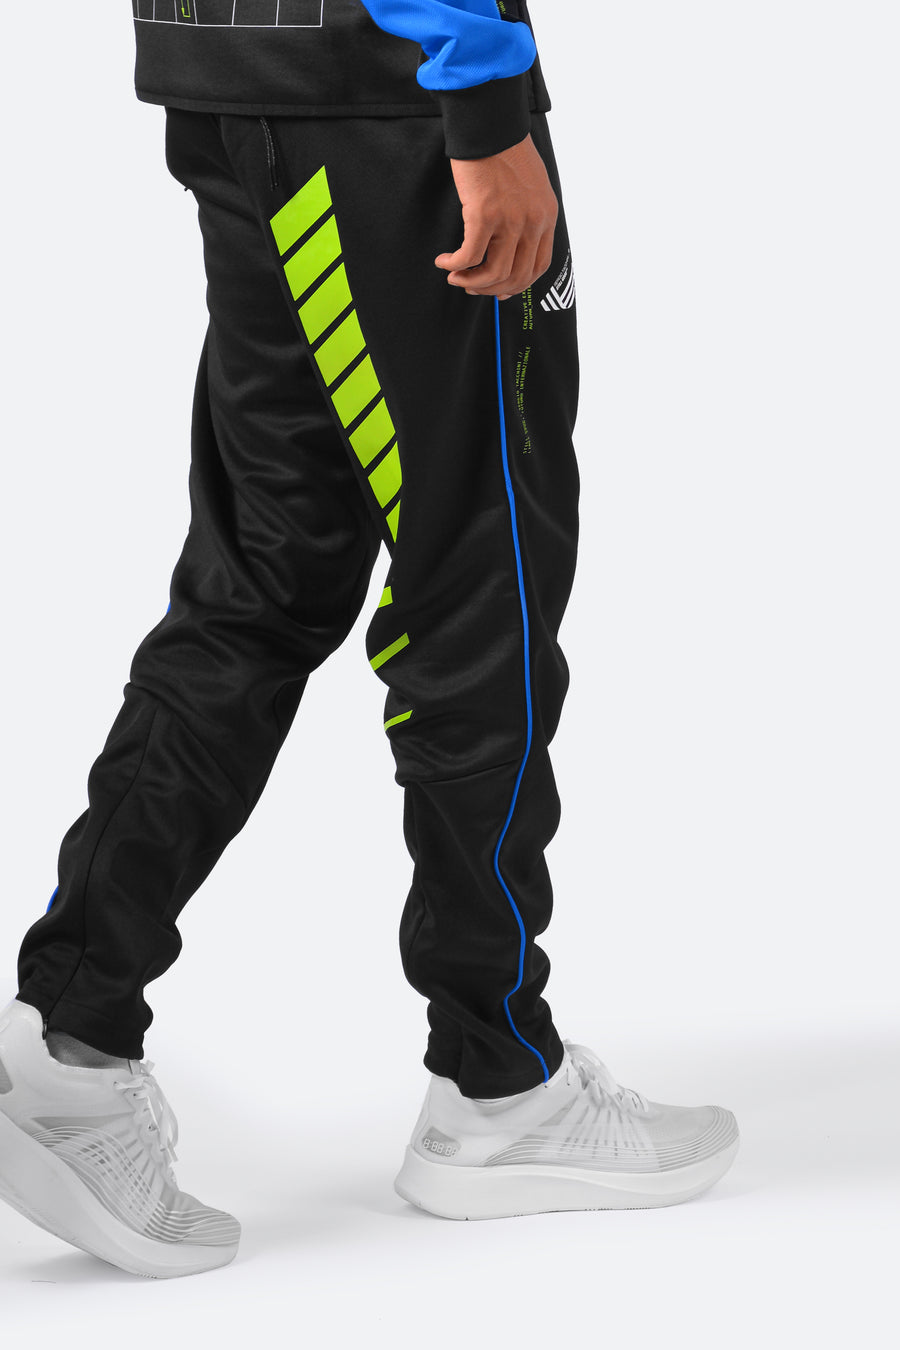 Still Good x Sergio Tacchini F1 Lab Track Pants #Black